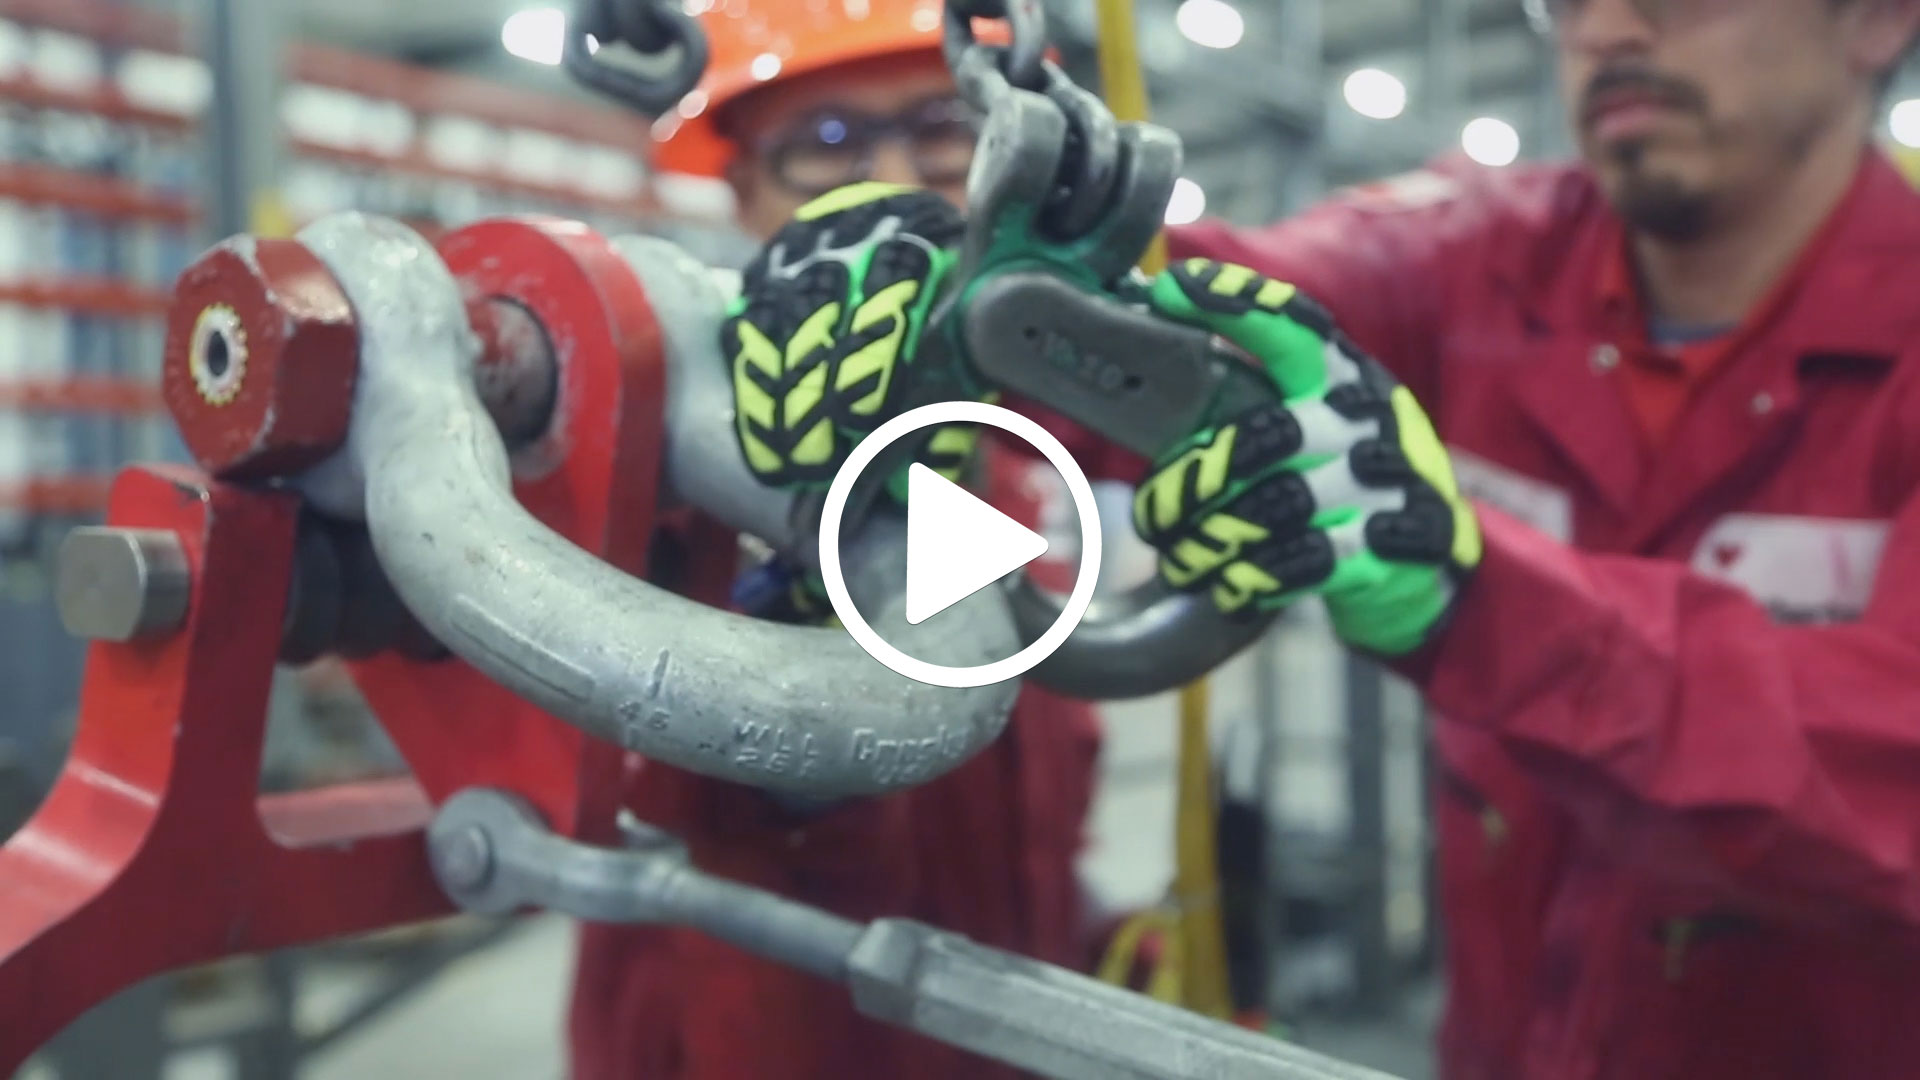 Watch our careers video for available job opening Field Technician - Rig Assistant in Bakersfield, CA